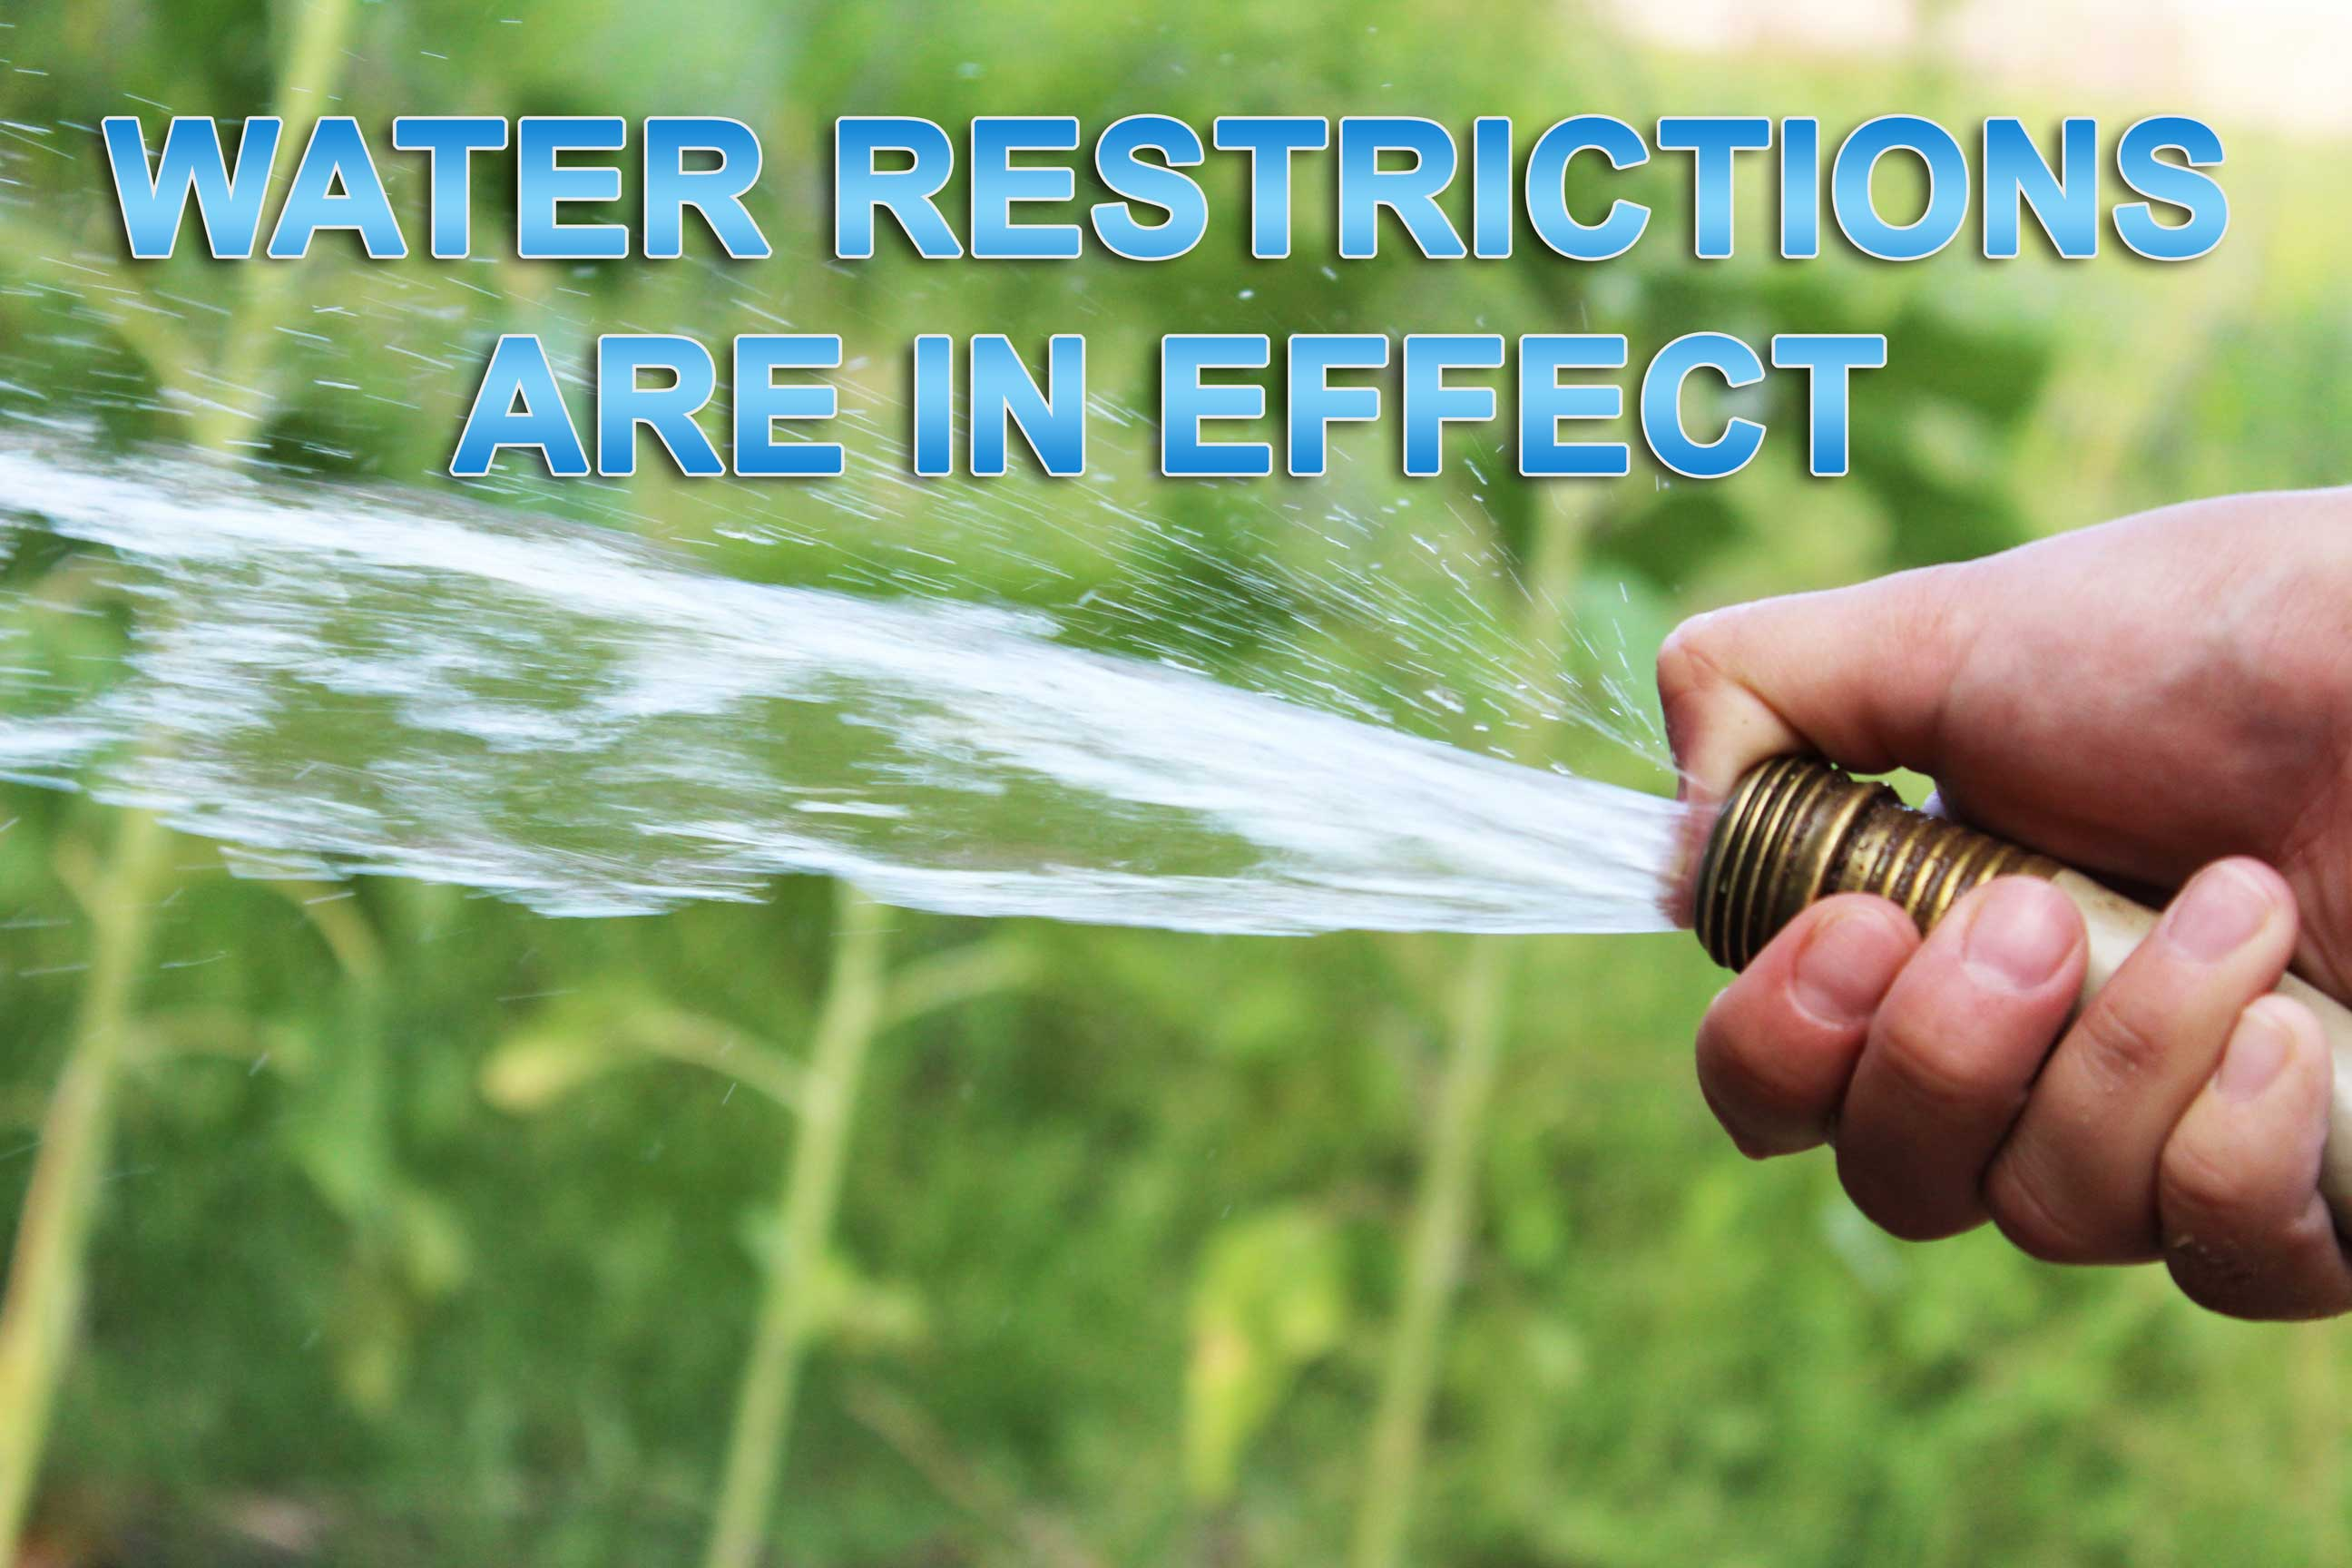 Hose spraying with overlayed message Water Restrictions are in Effect